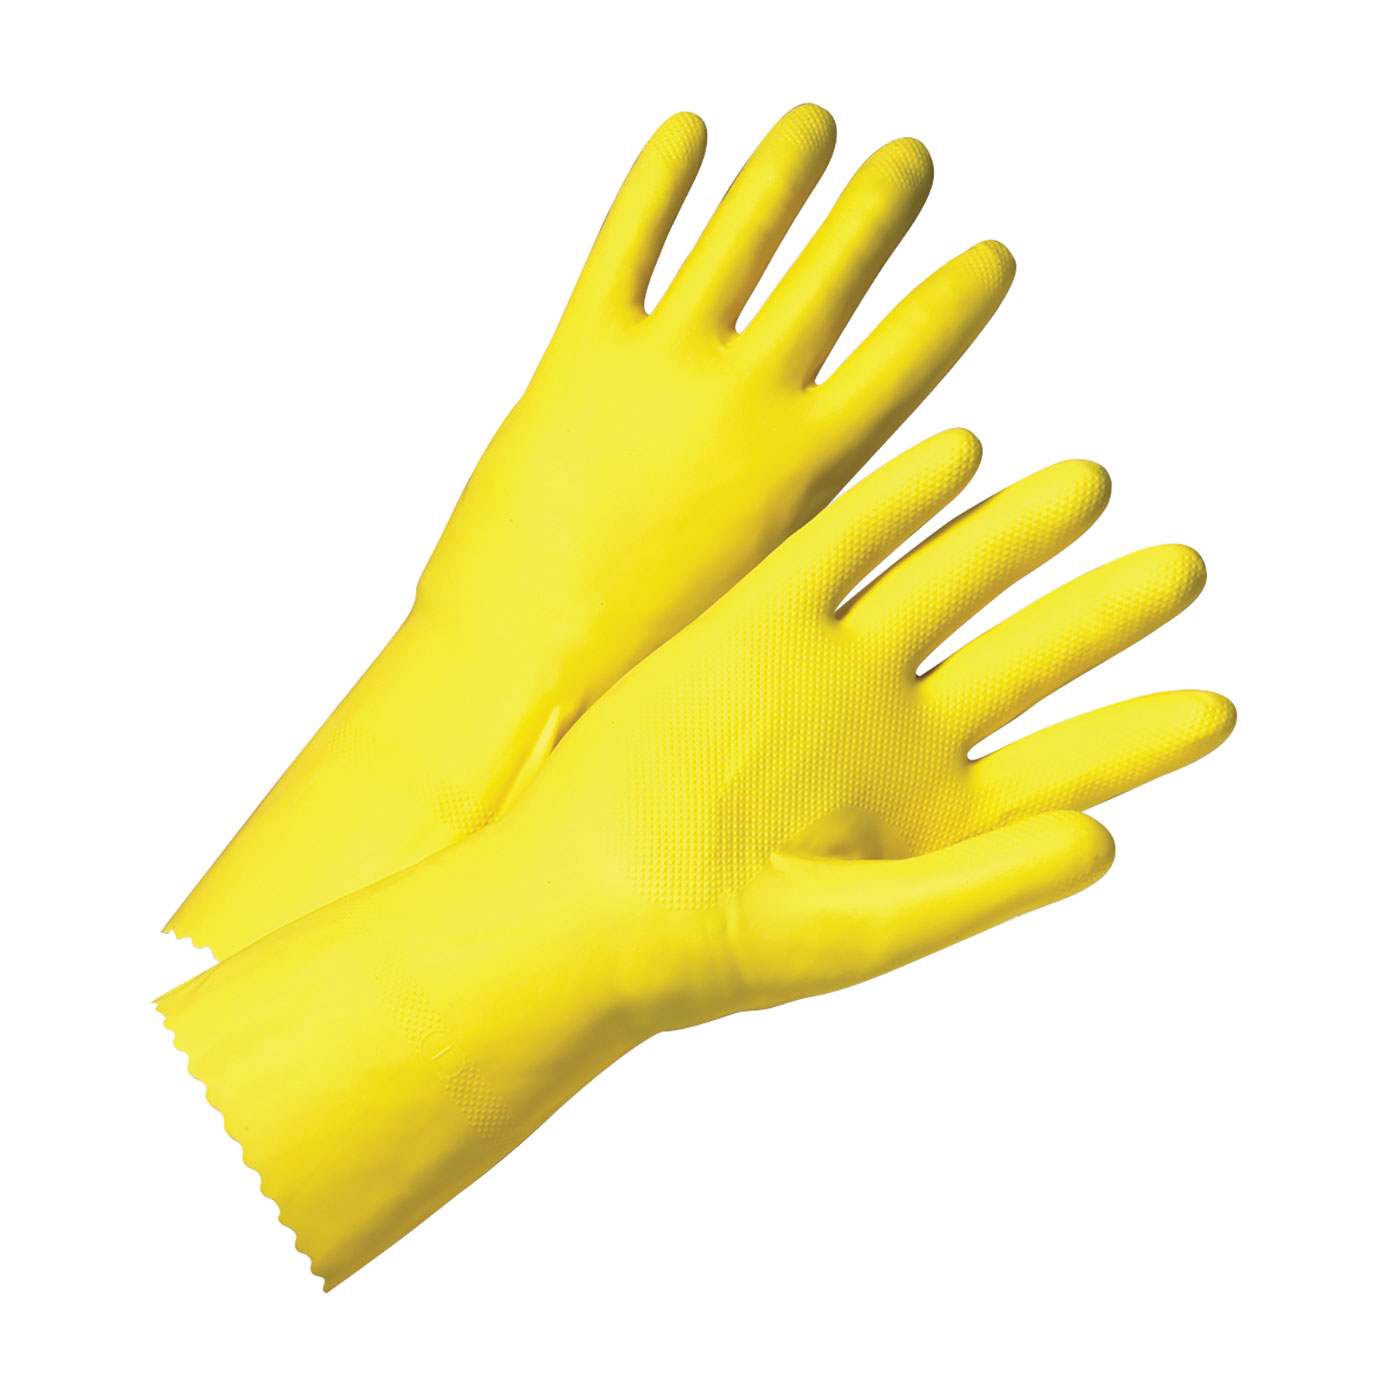 Unsupported Latex, Flock Lined with Raised Diamond Grip - 18 Mil, Yellow, 10